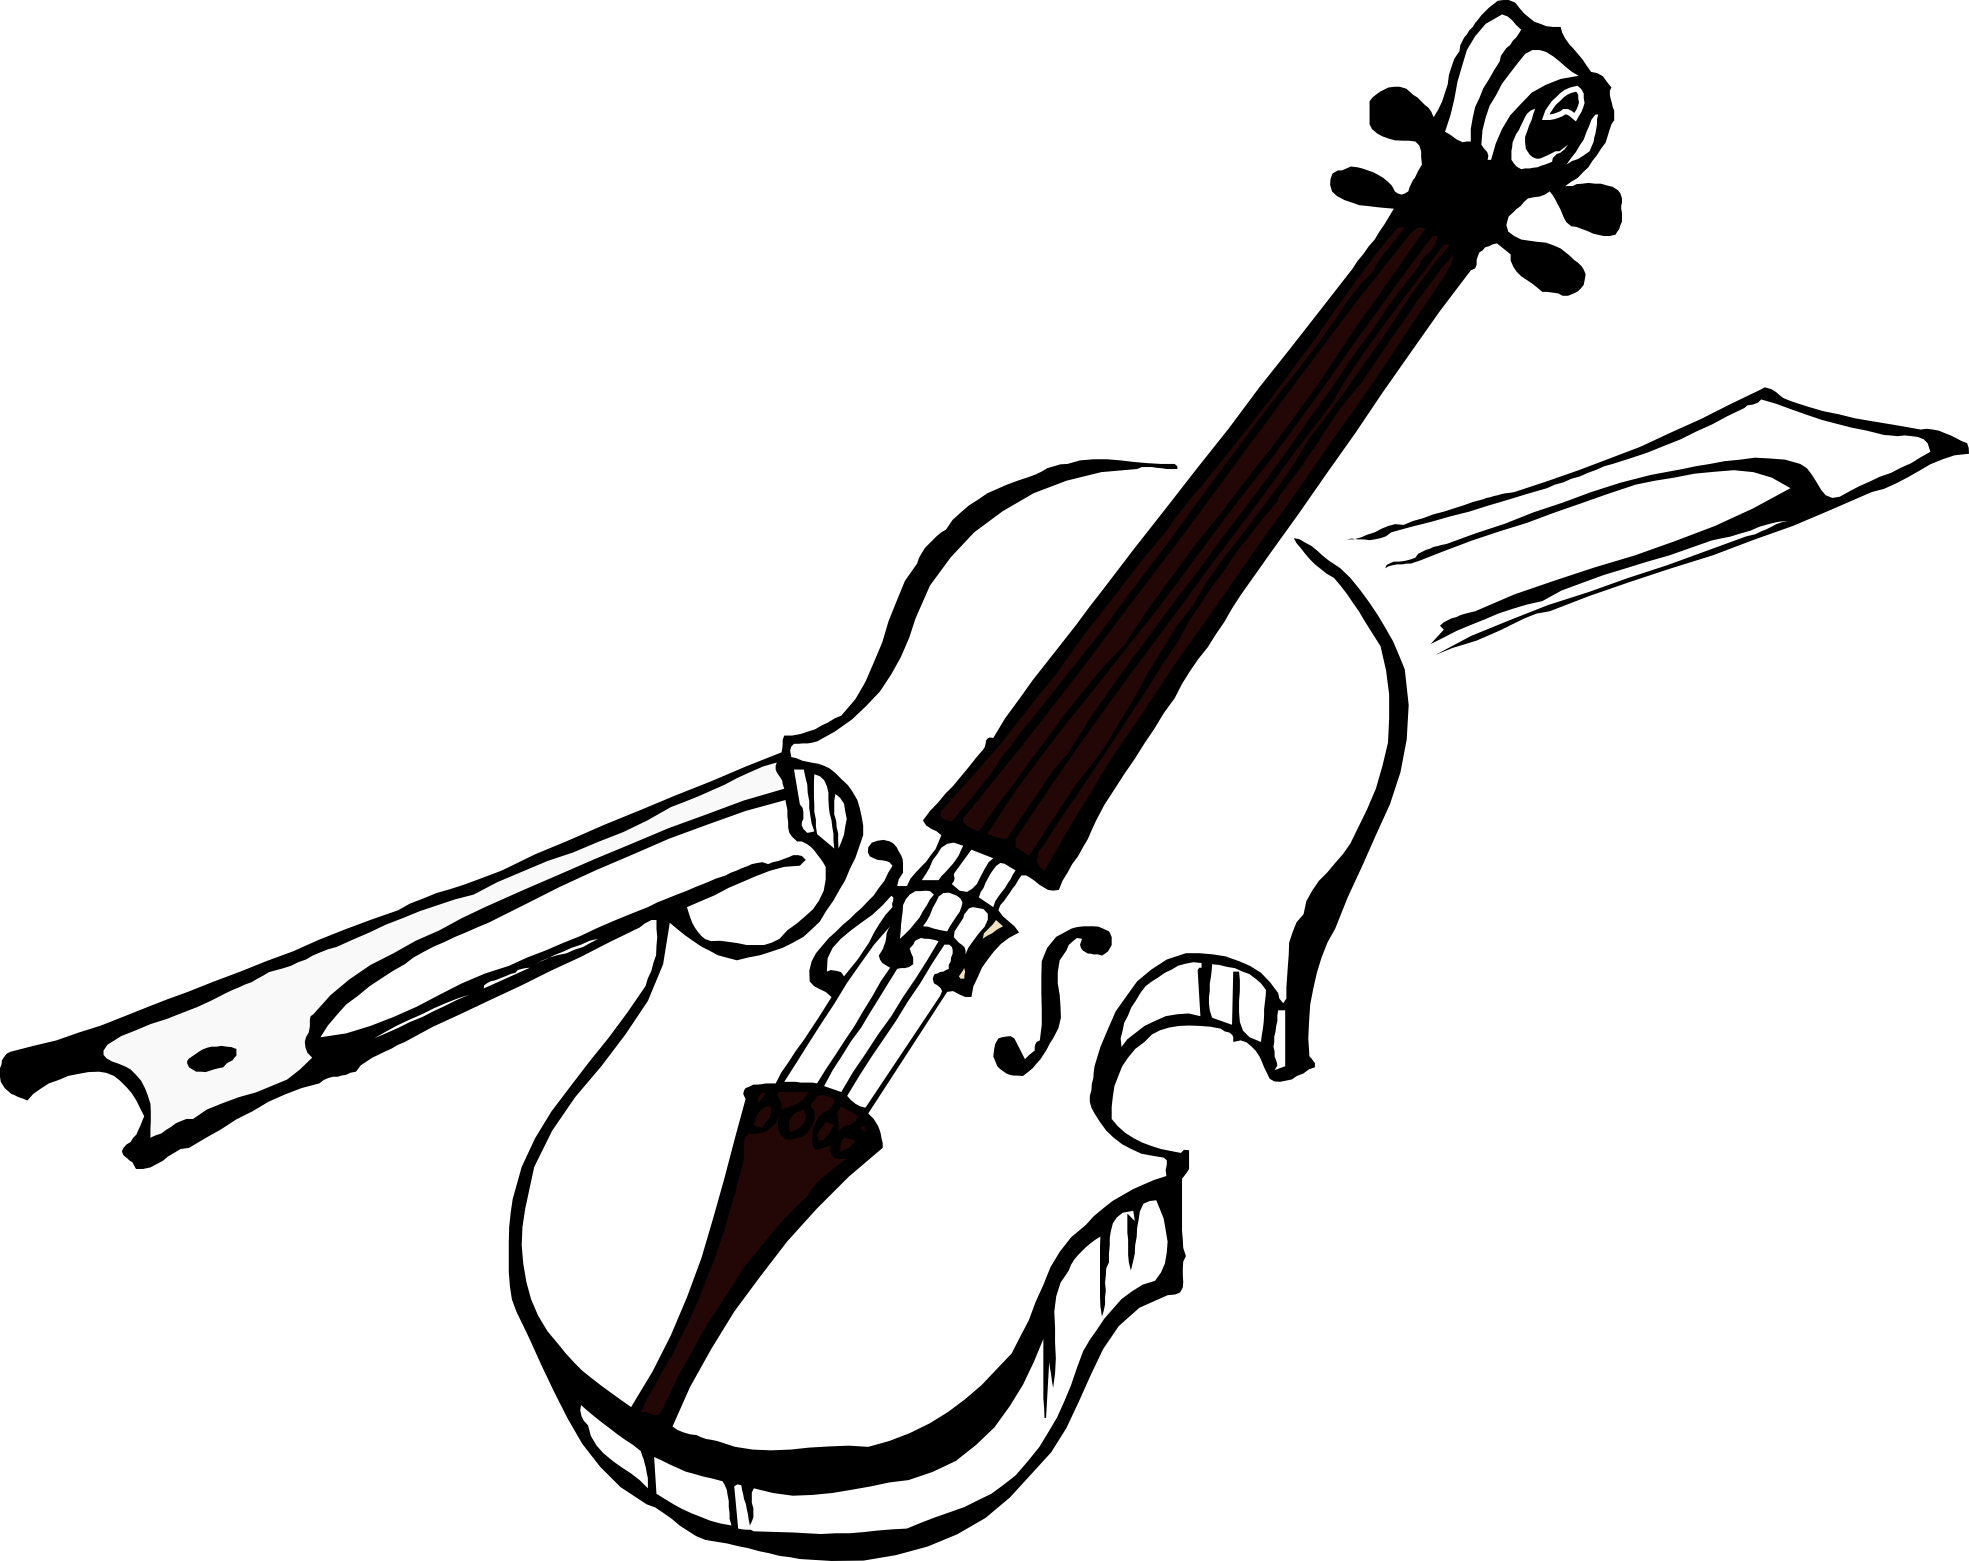 image freeuse download Musical instruments clipart black and white. Flute violin music free